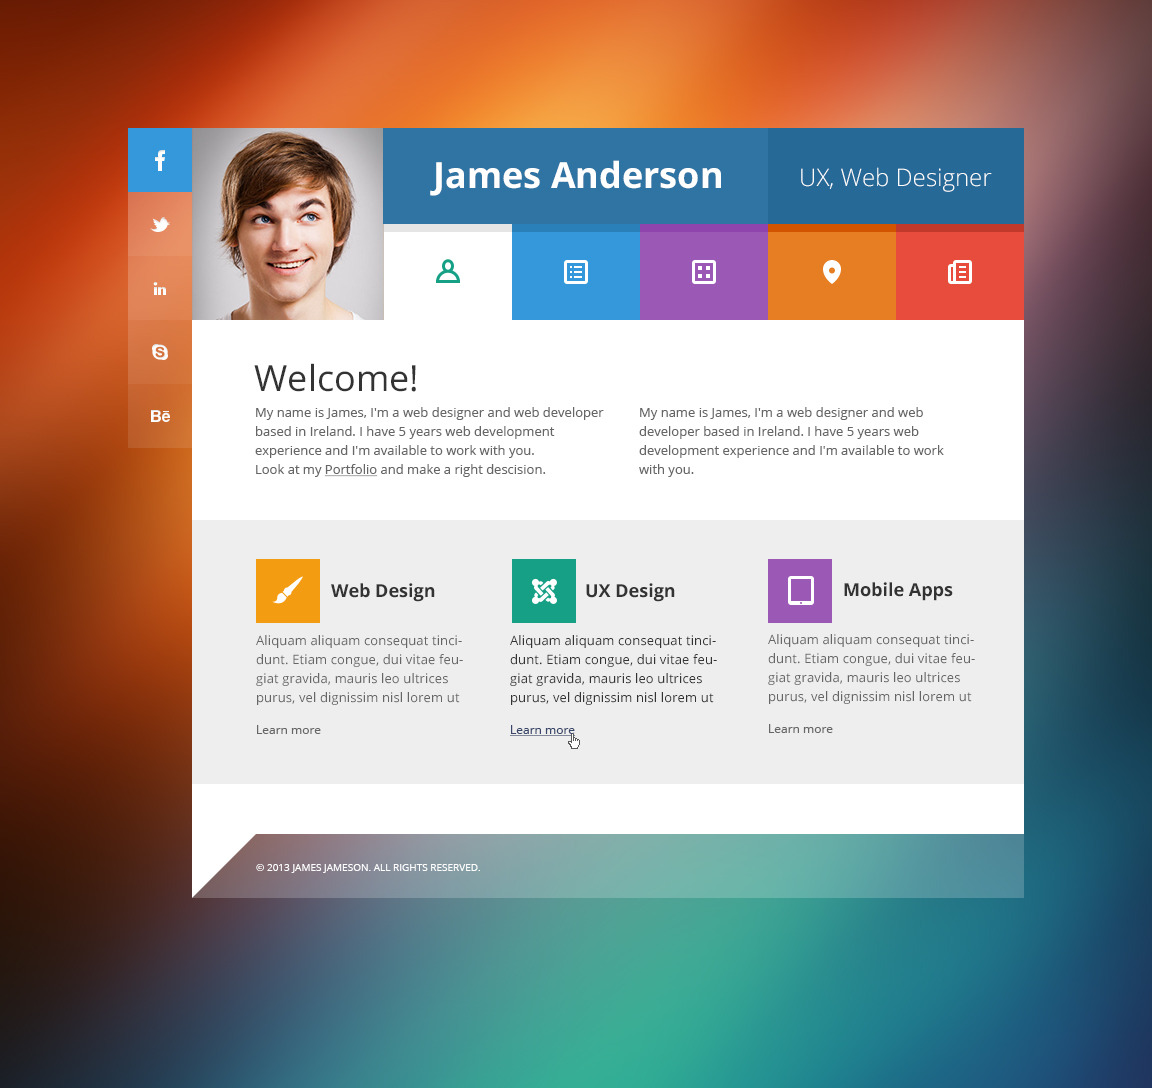 Wonderful 1 Circle Template Big 10 Best Resumes Flat 10 Hour Schedule Templates 10 Steps To Creating An Effective Resume Young 10 Words Not To Put On Your Resume Green100 Dollar Bill Template Gridly VCard PSD Template By Alexeyka | ThemeForest